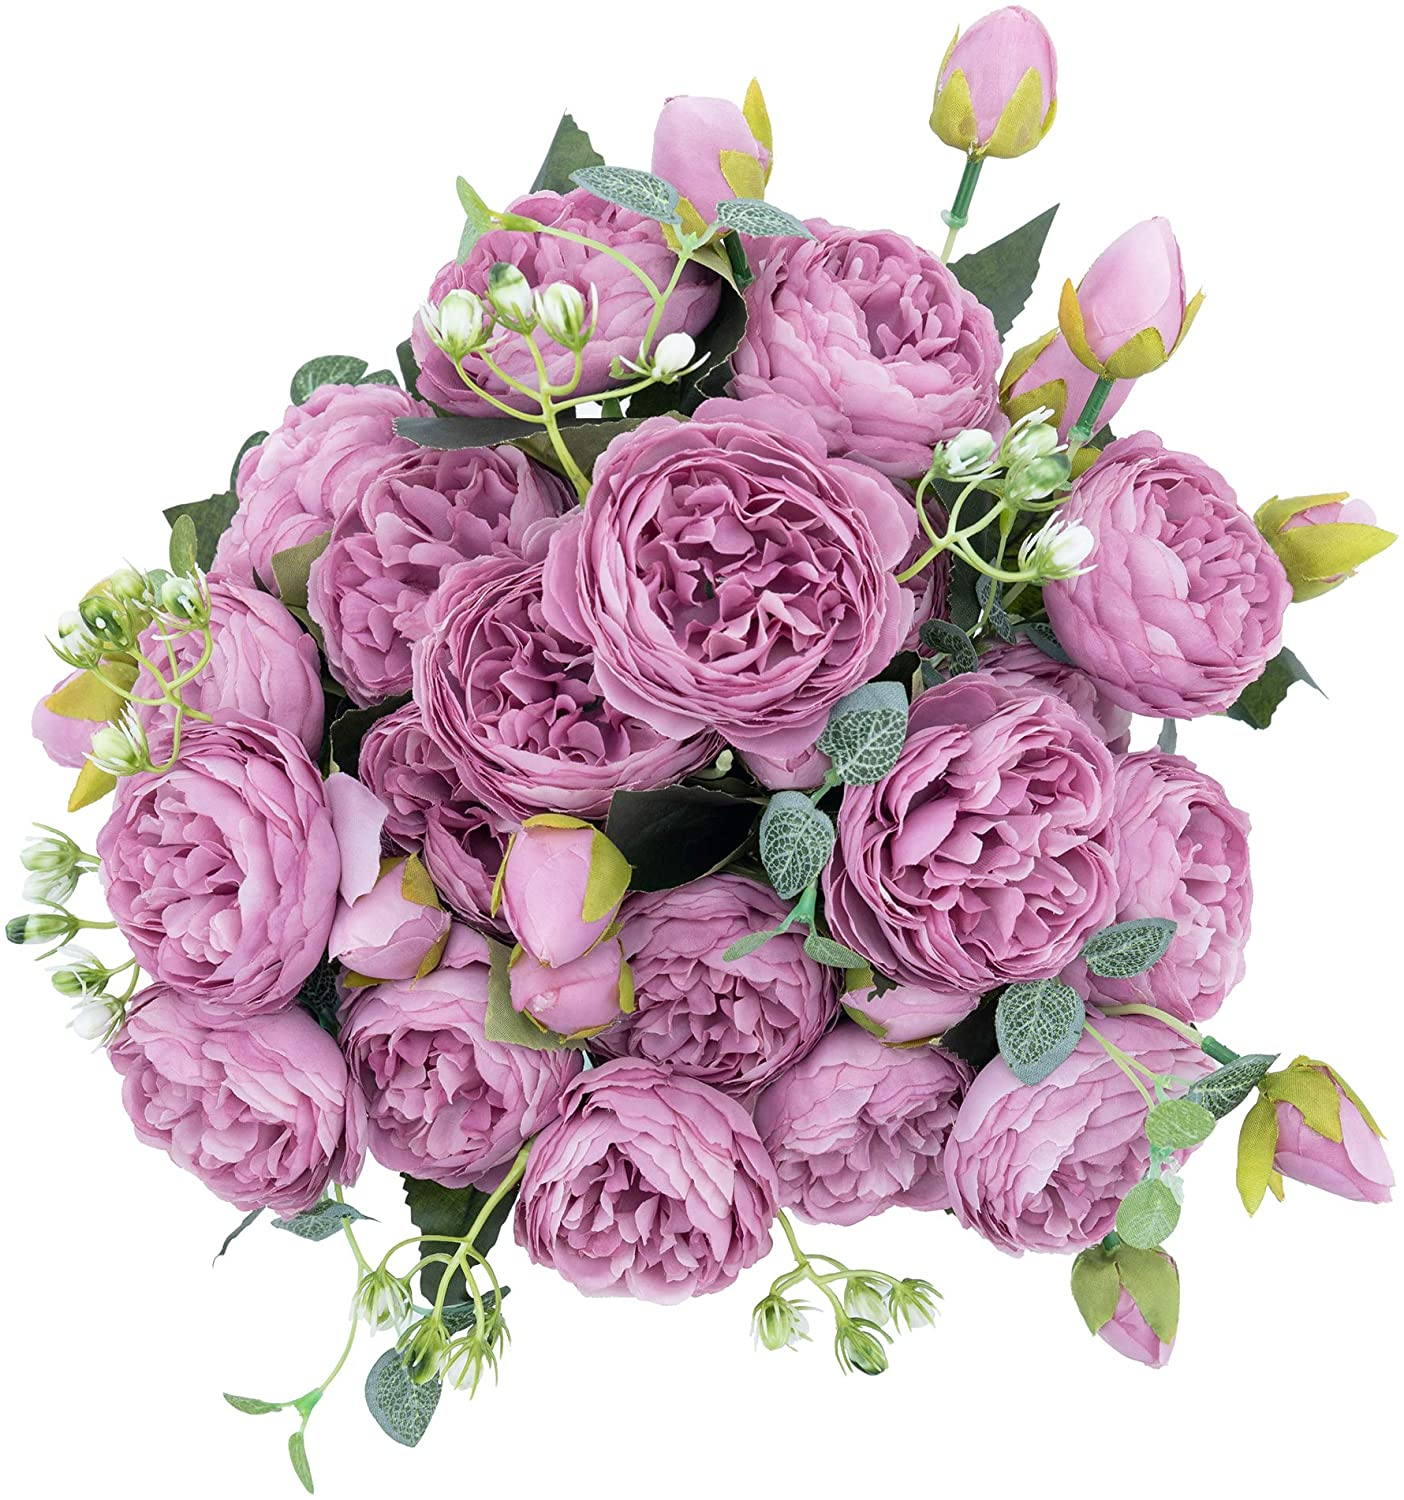 crazylove Artificial Silk Peony Flowers Fake Flower Purple Kitchen Bouquet Small Pieces Design for Home Wedding Decoration Indoor (4 Pack, Purple)